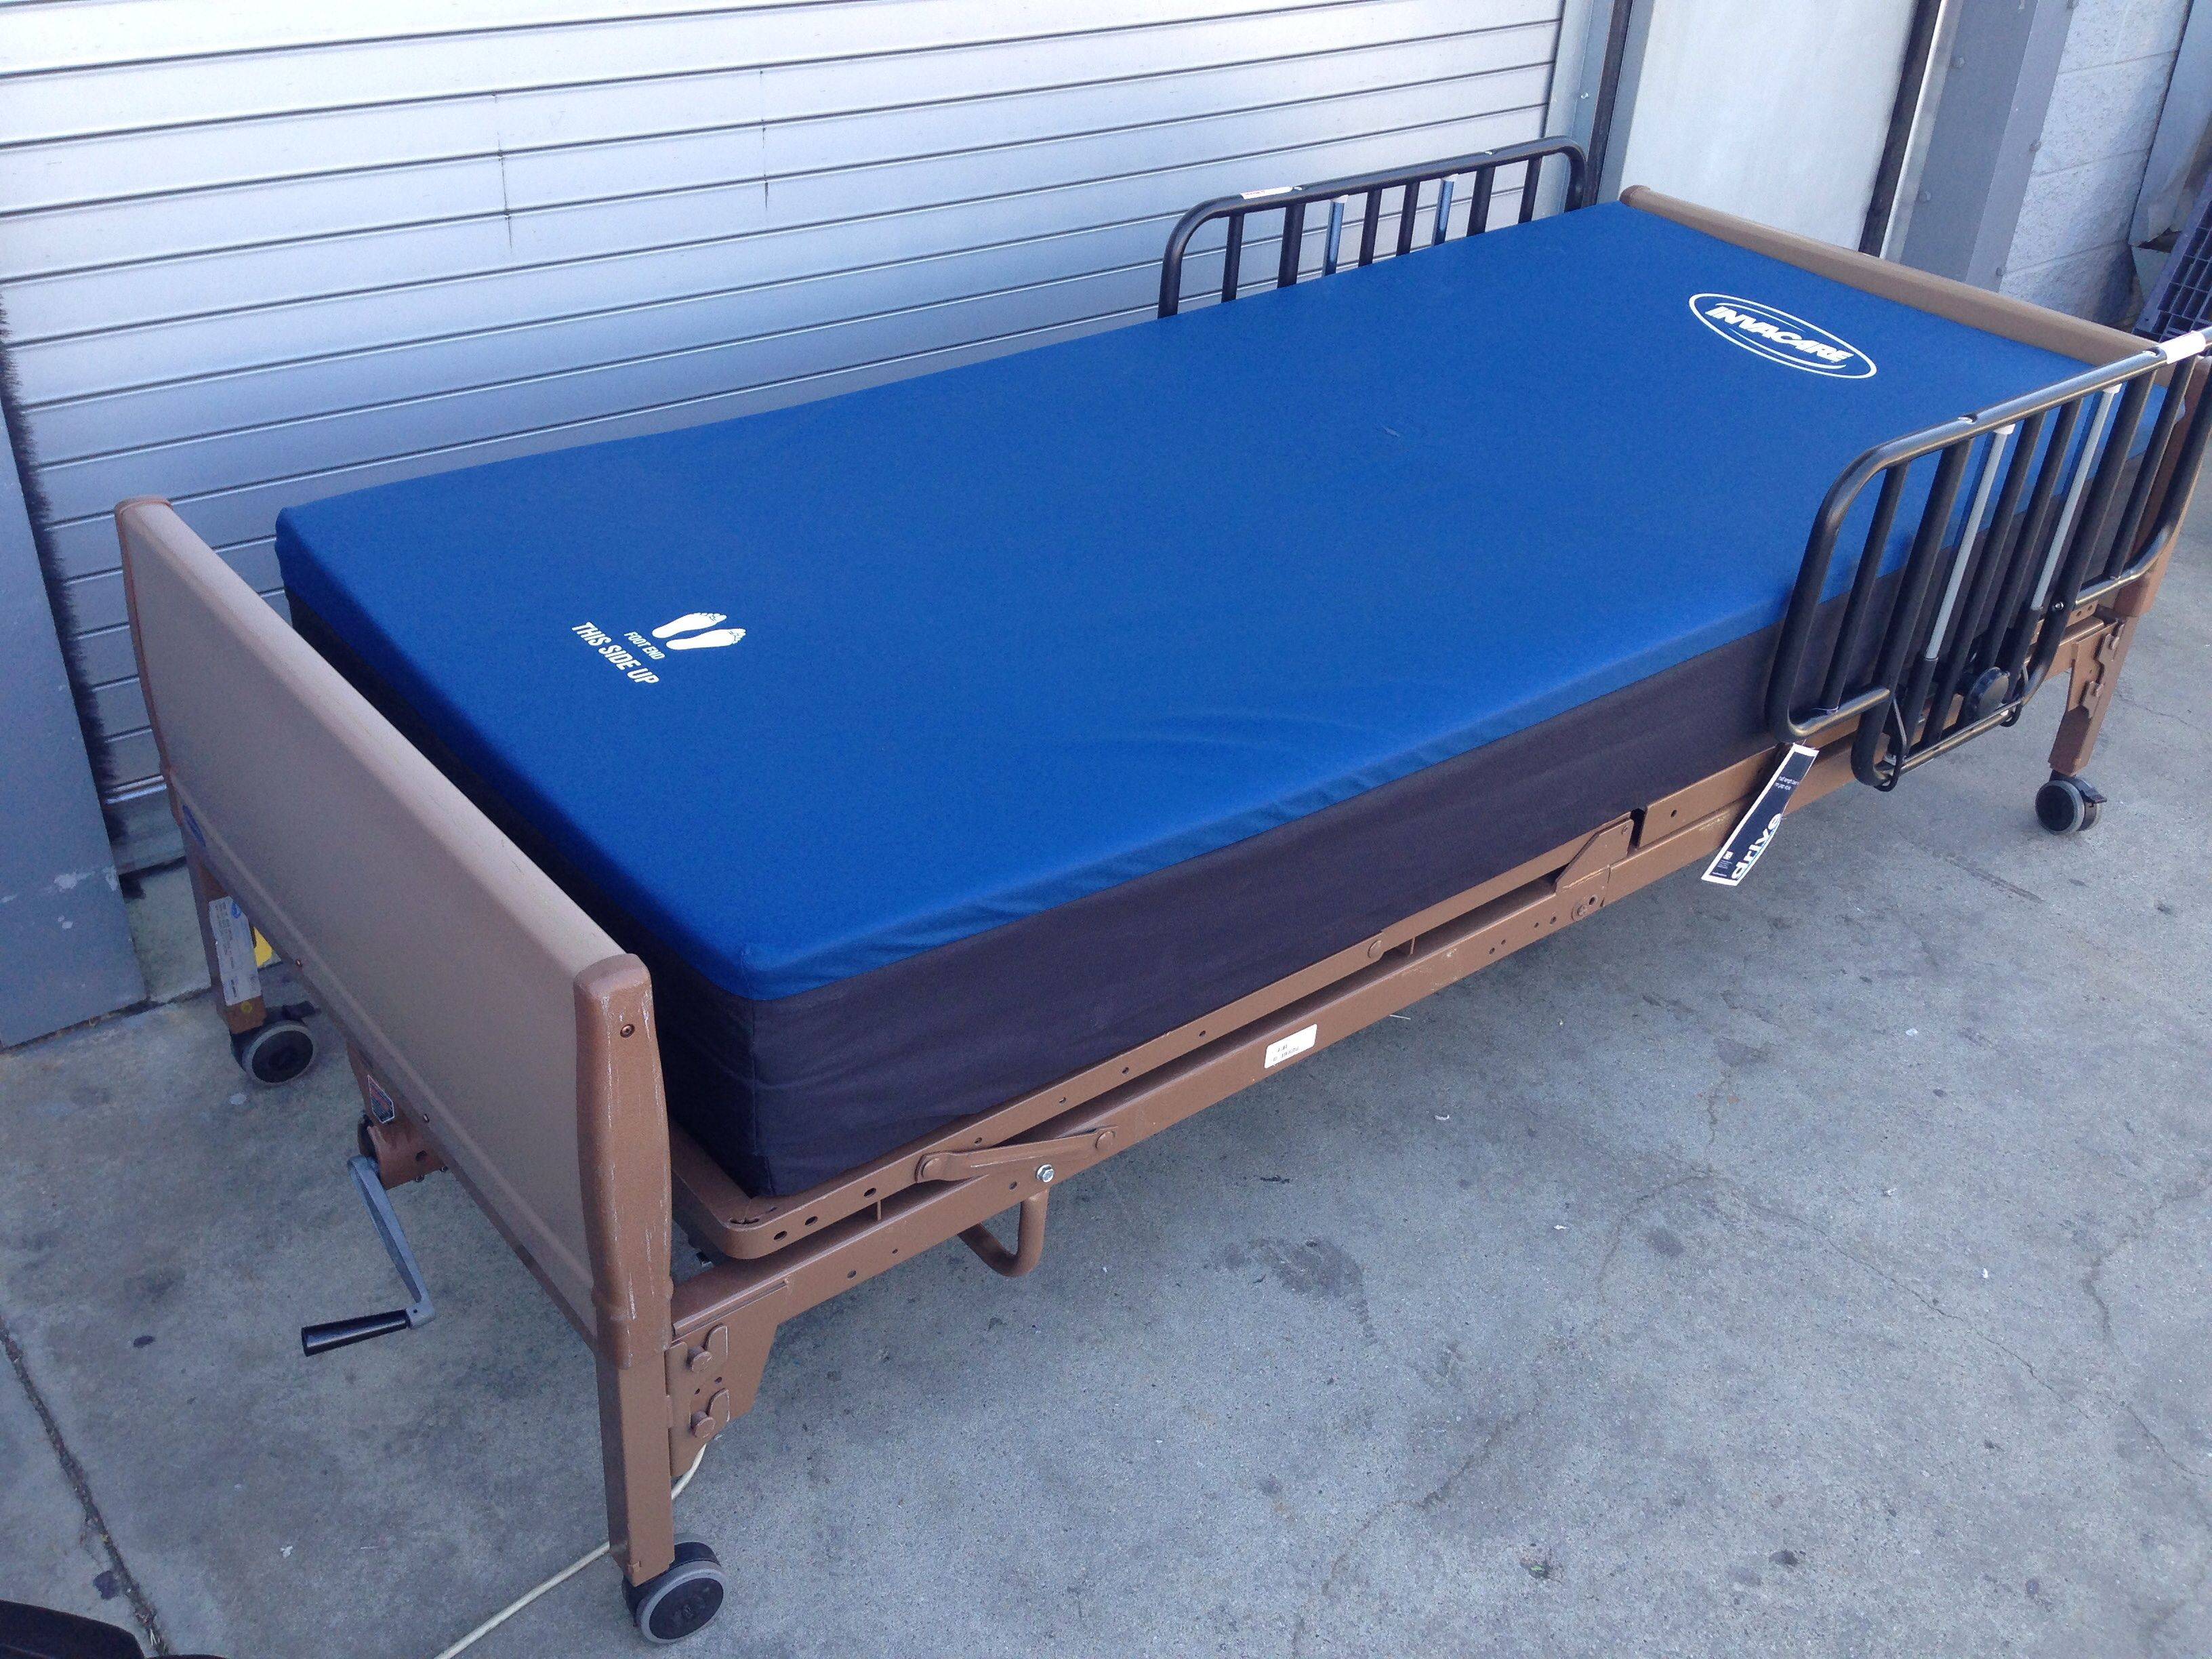 Invacare Air Mattress Is A Full-Depth Replacement System To Reduce  Interface Pressure For Stage I-IV Pressure Ulcers.